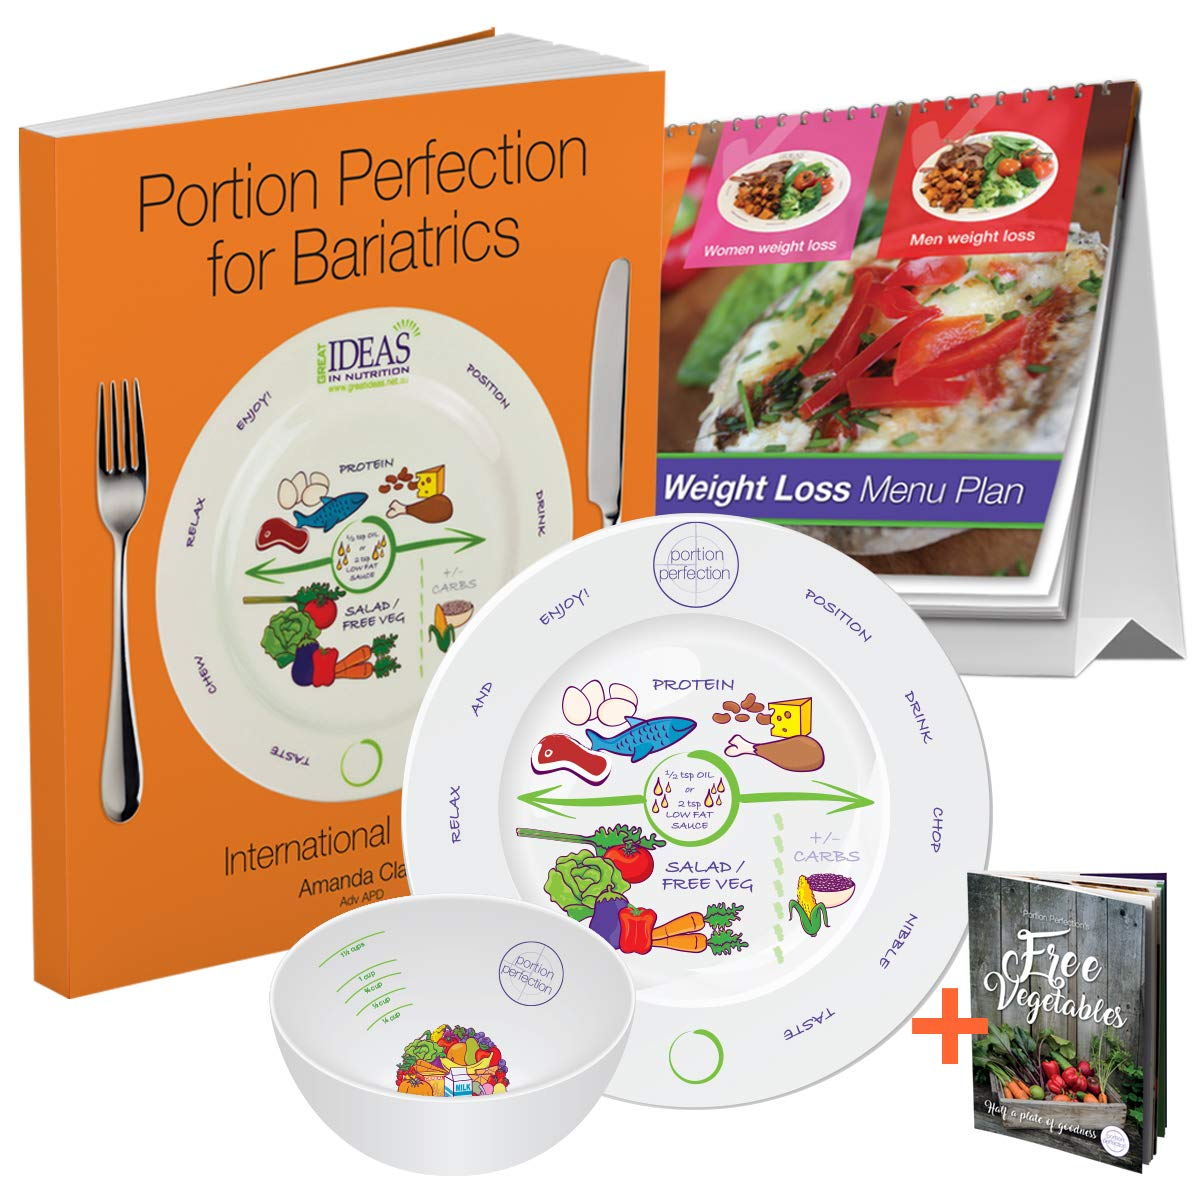 Bariatric Cookbook Surgery Weight Loss Program Kit Easy Tools for Portion Control Dieting After Sleeve Gastrectomy, Gastric Bypass, Balloon & Banding & Free Bonus Vegetable Cookbook by Portion Perfection (Image #1)